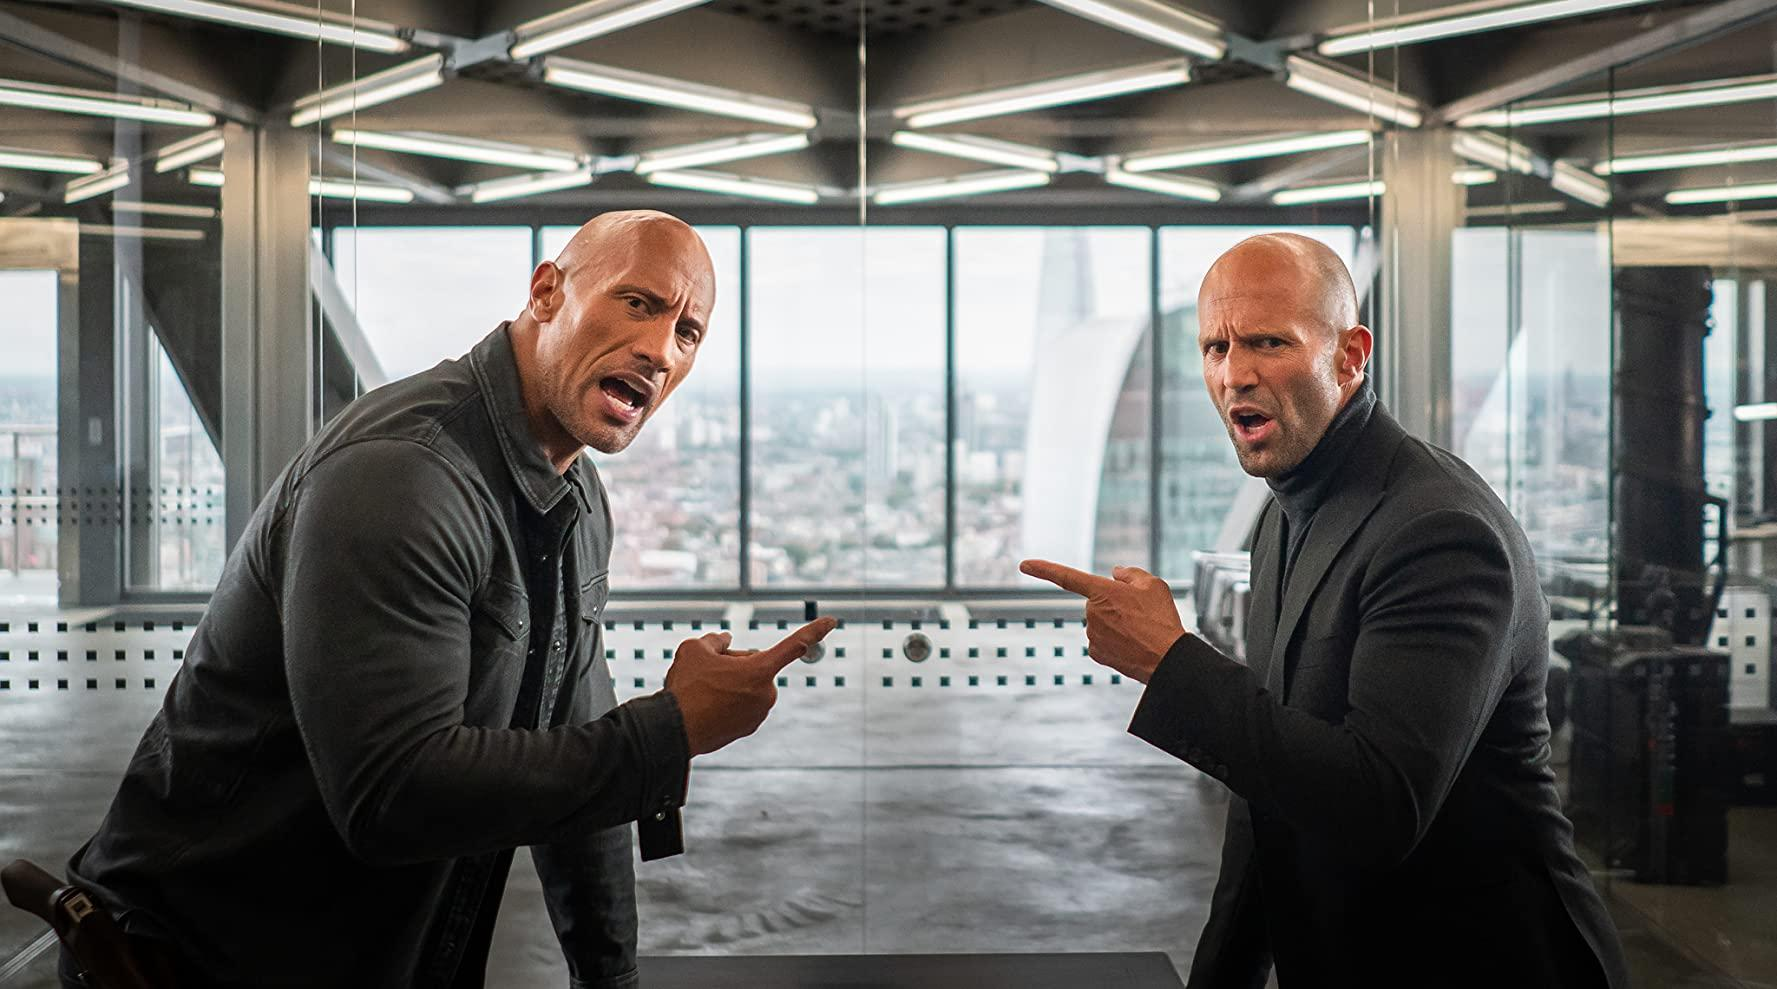 مشاهدة فيلم Fast and Furious Presents Hobbs and Shaw (2019) مترجم HD اون لاين